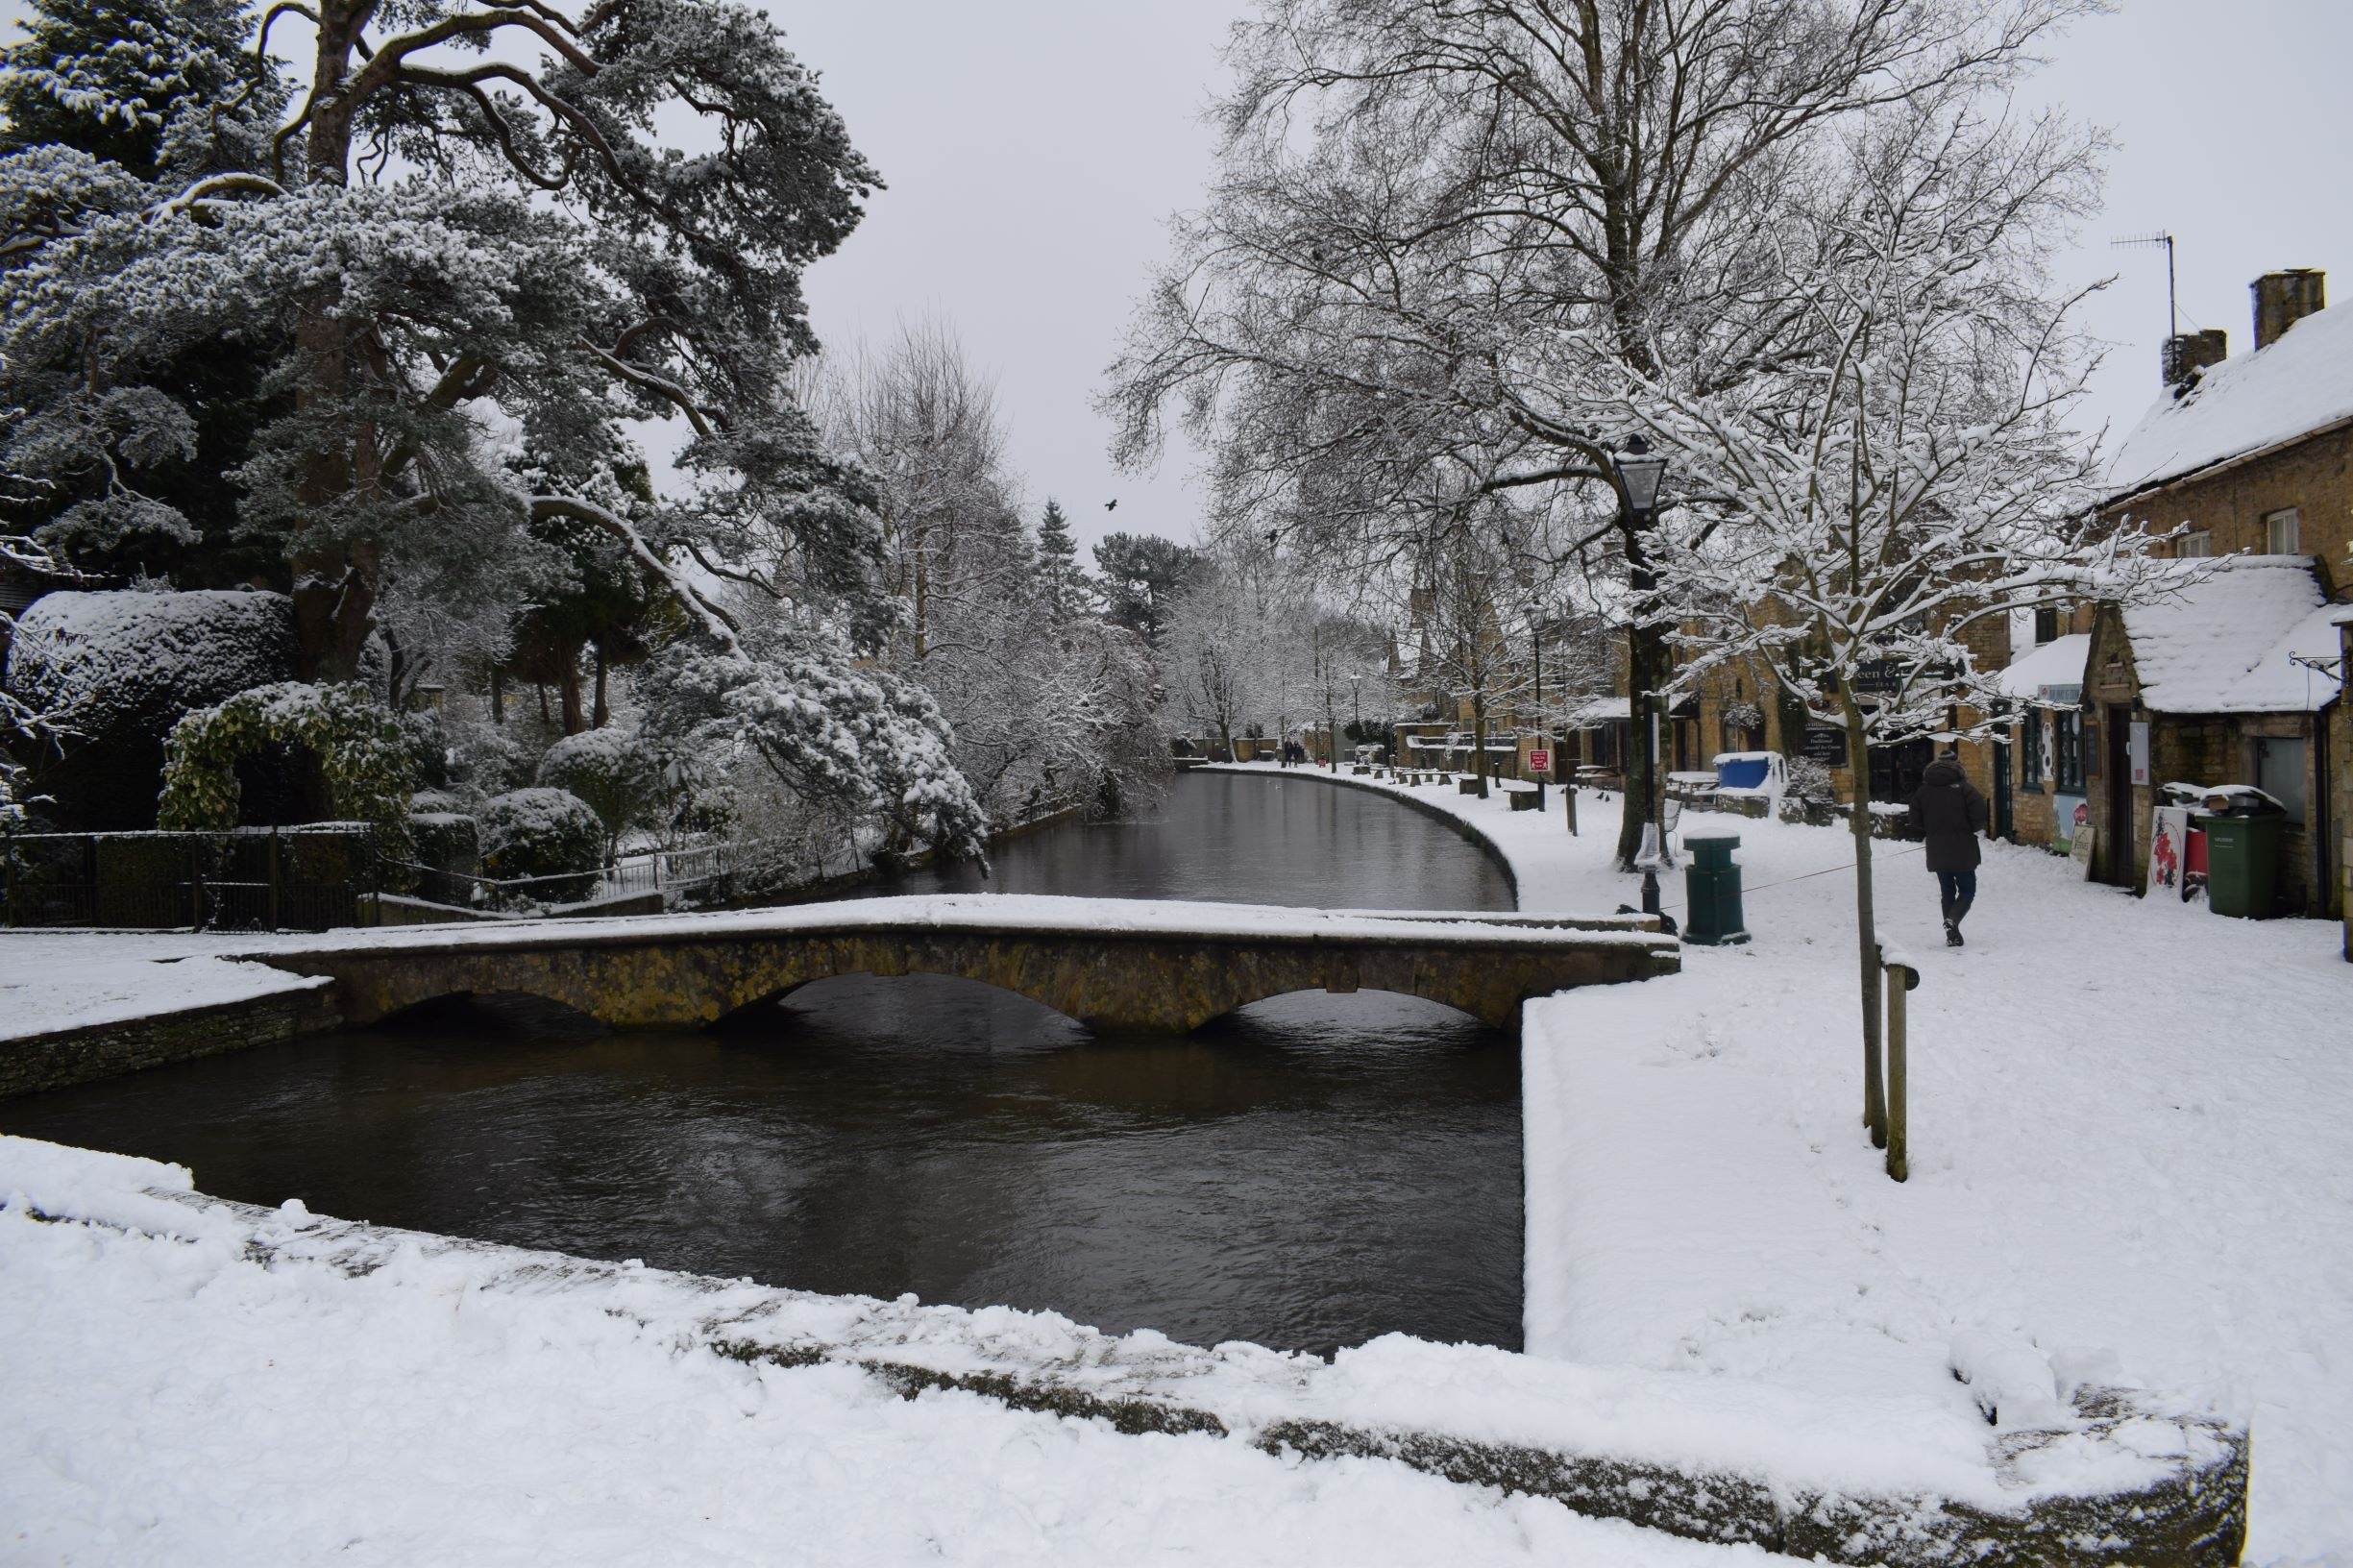 Bourton-on-the-Water, mid-January